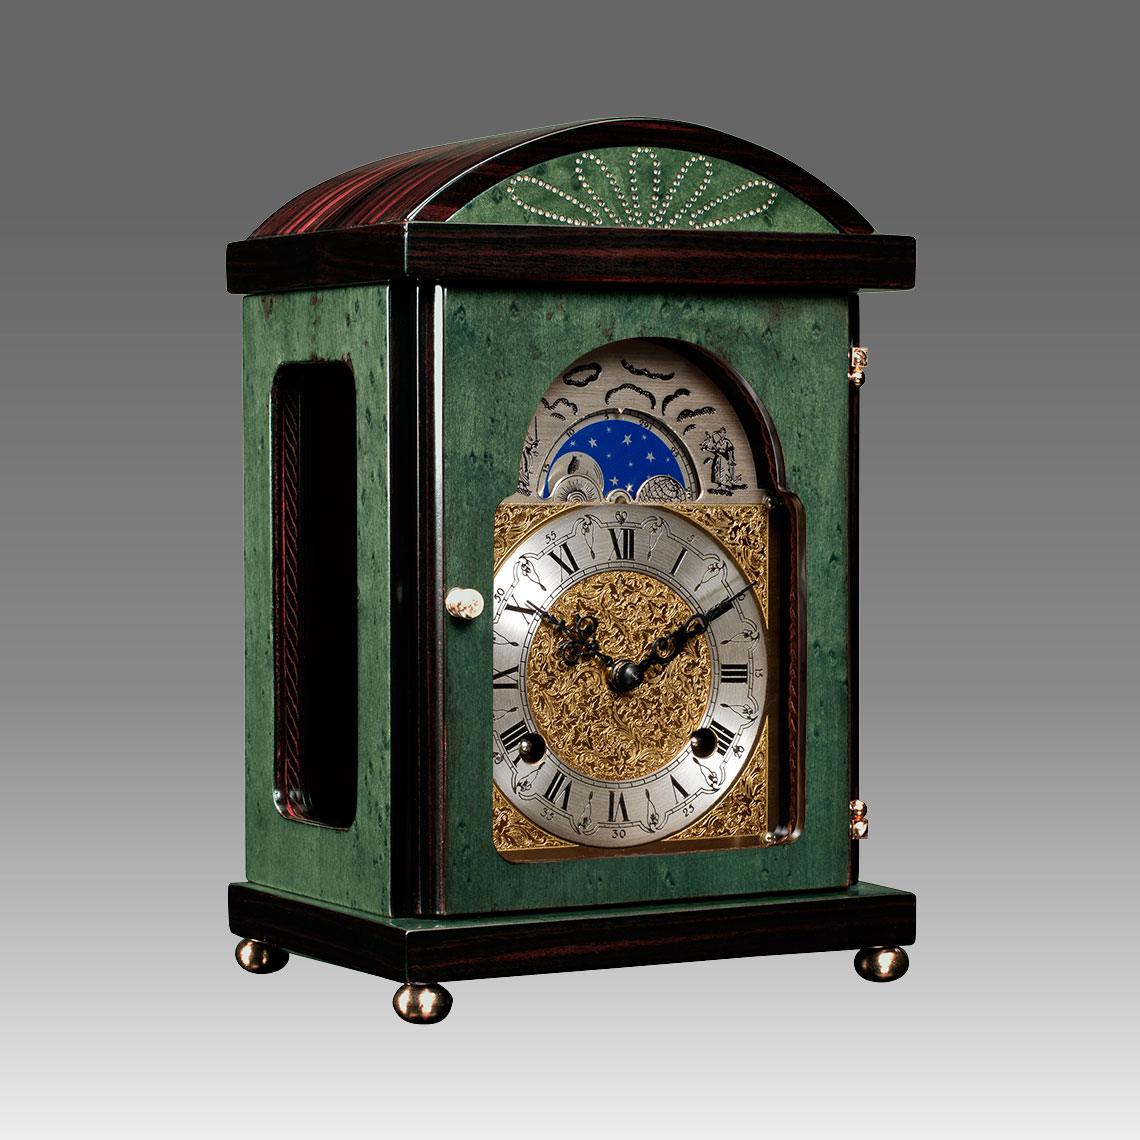 Mante Clock, Table Clock, Cimn Clock, Art.340/4 Erable green wood - Bim Bam melody on Bells, eatched decorated moon fase dial